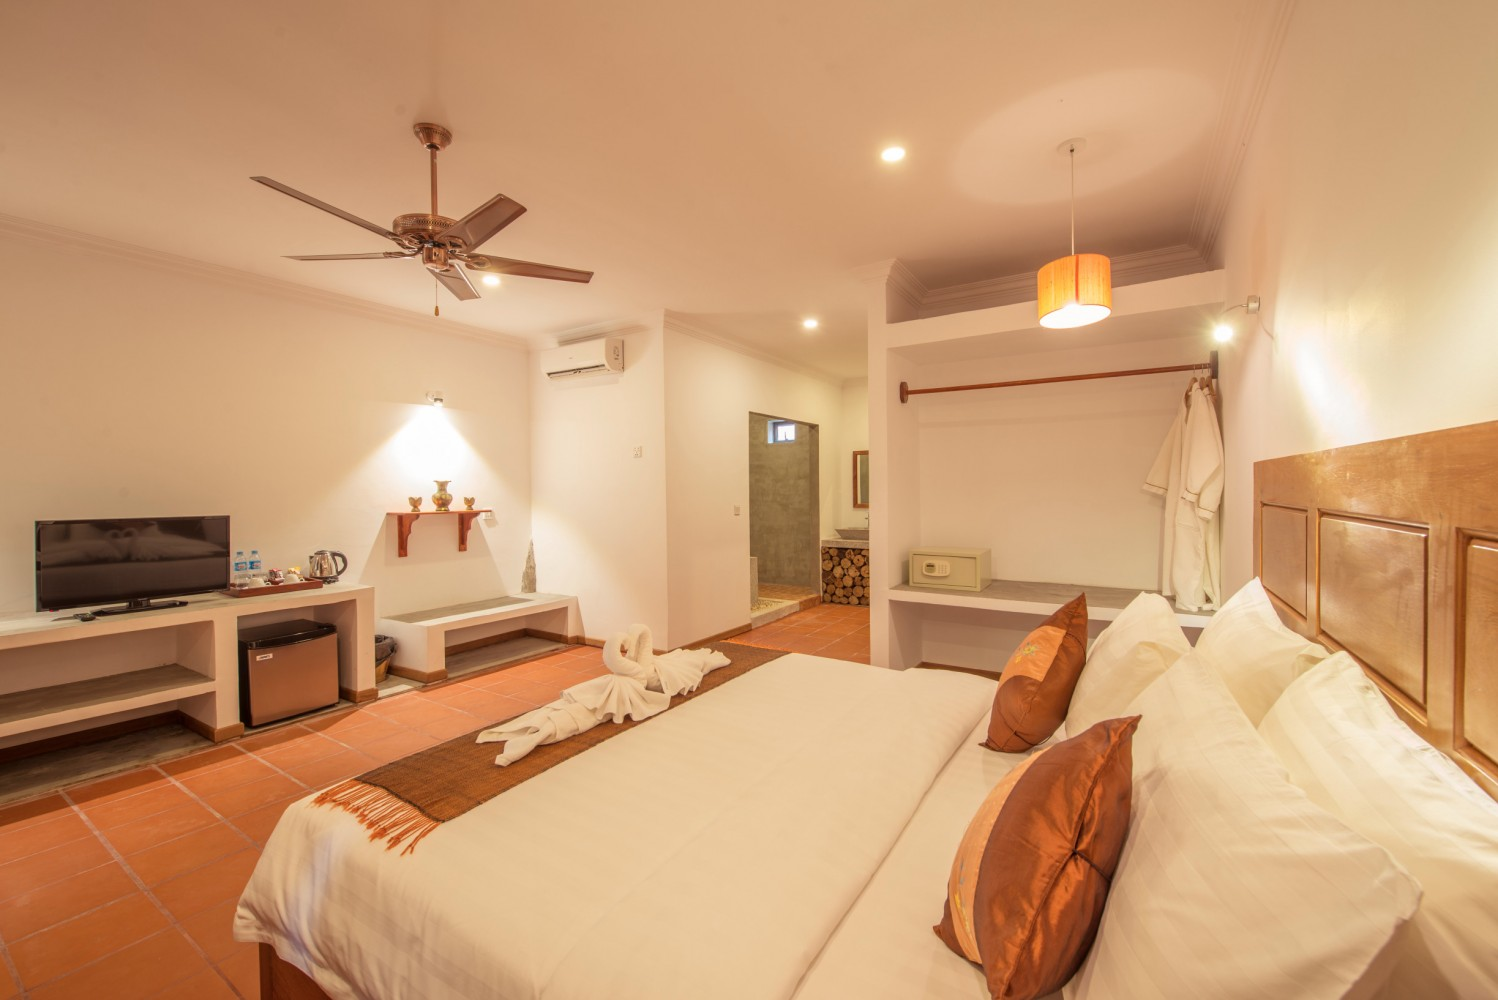 Muebles Nova Luxe Zacatecas - Make A Room Reservation The Clay D Angkor Hotel[mjhdah]https://h-img3.cloudbeds.com/uploads/3345/deluxe_twin_plus~~5912ac042f09c.jpg